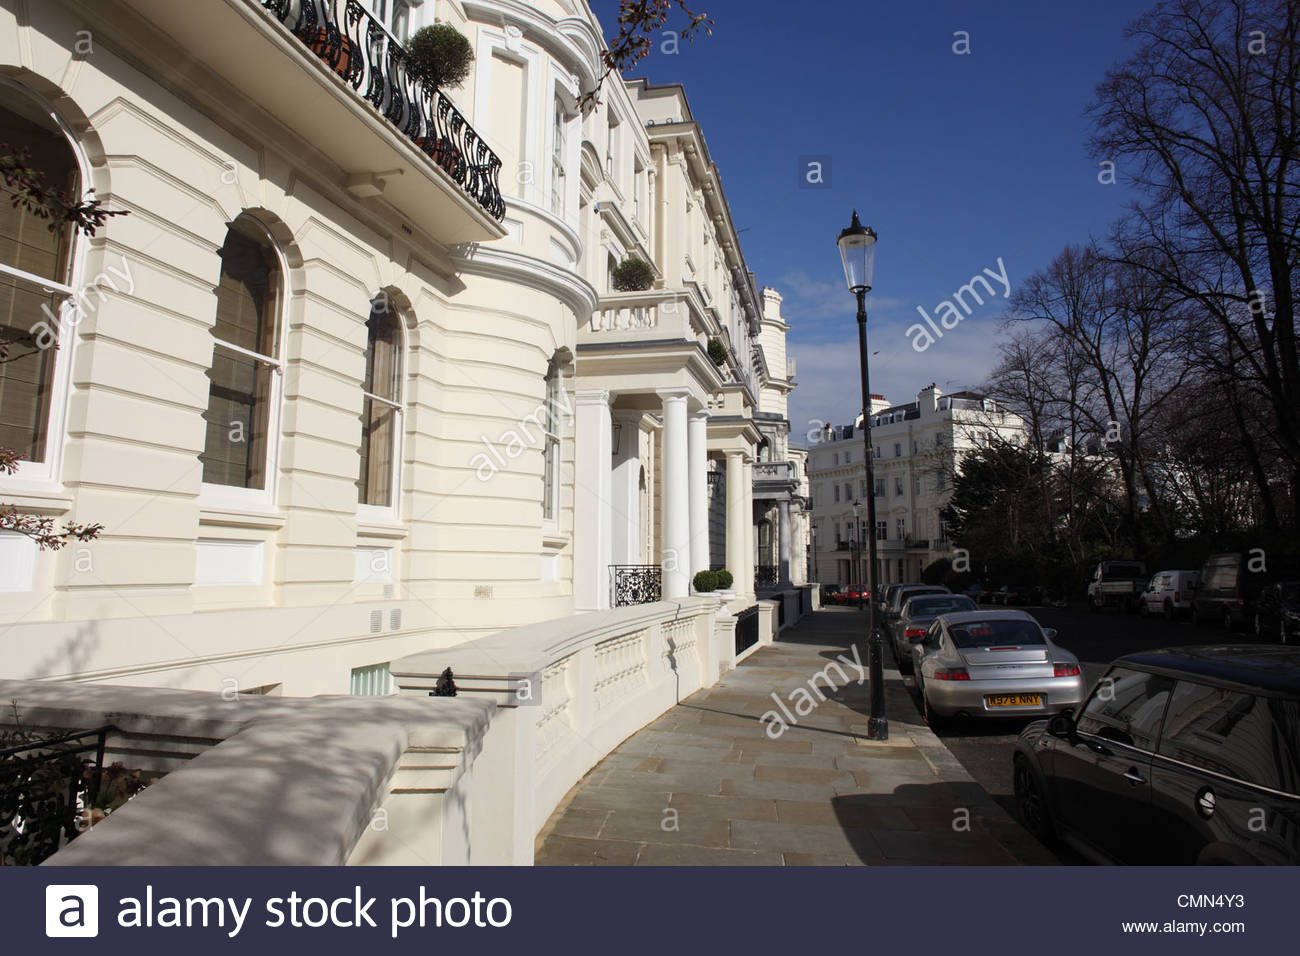 A side view row town house in London - Stock Image